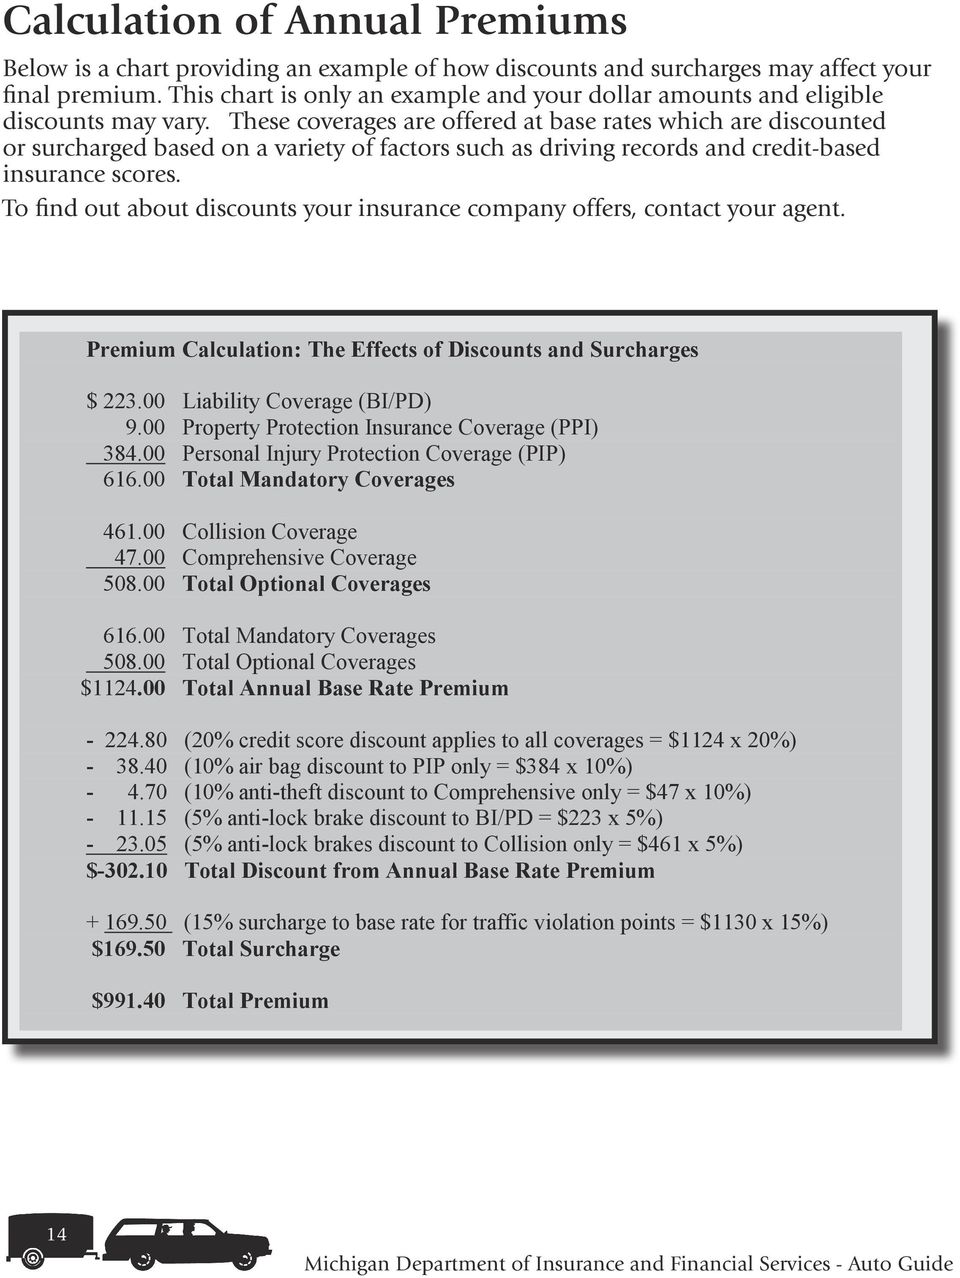 Below is a chart providing an example of how discounts and surcharges may affect your final To find premium.